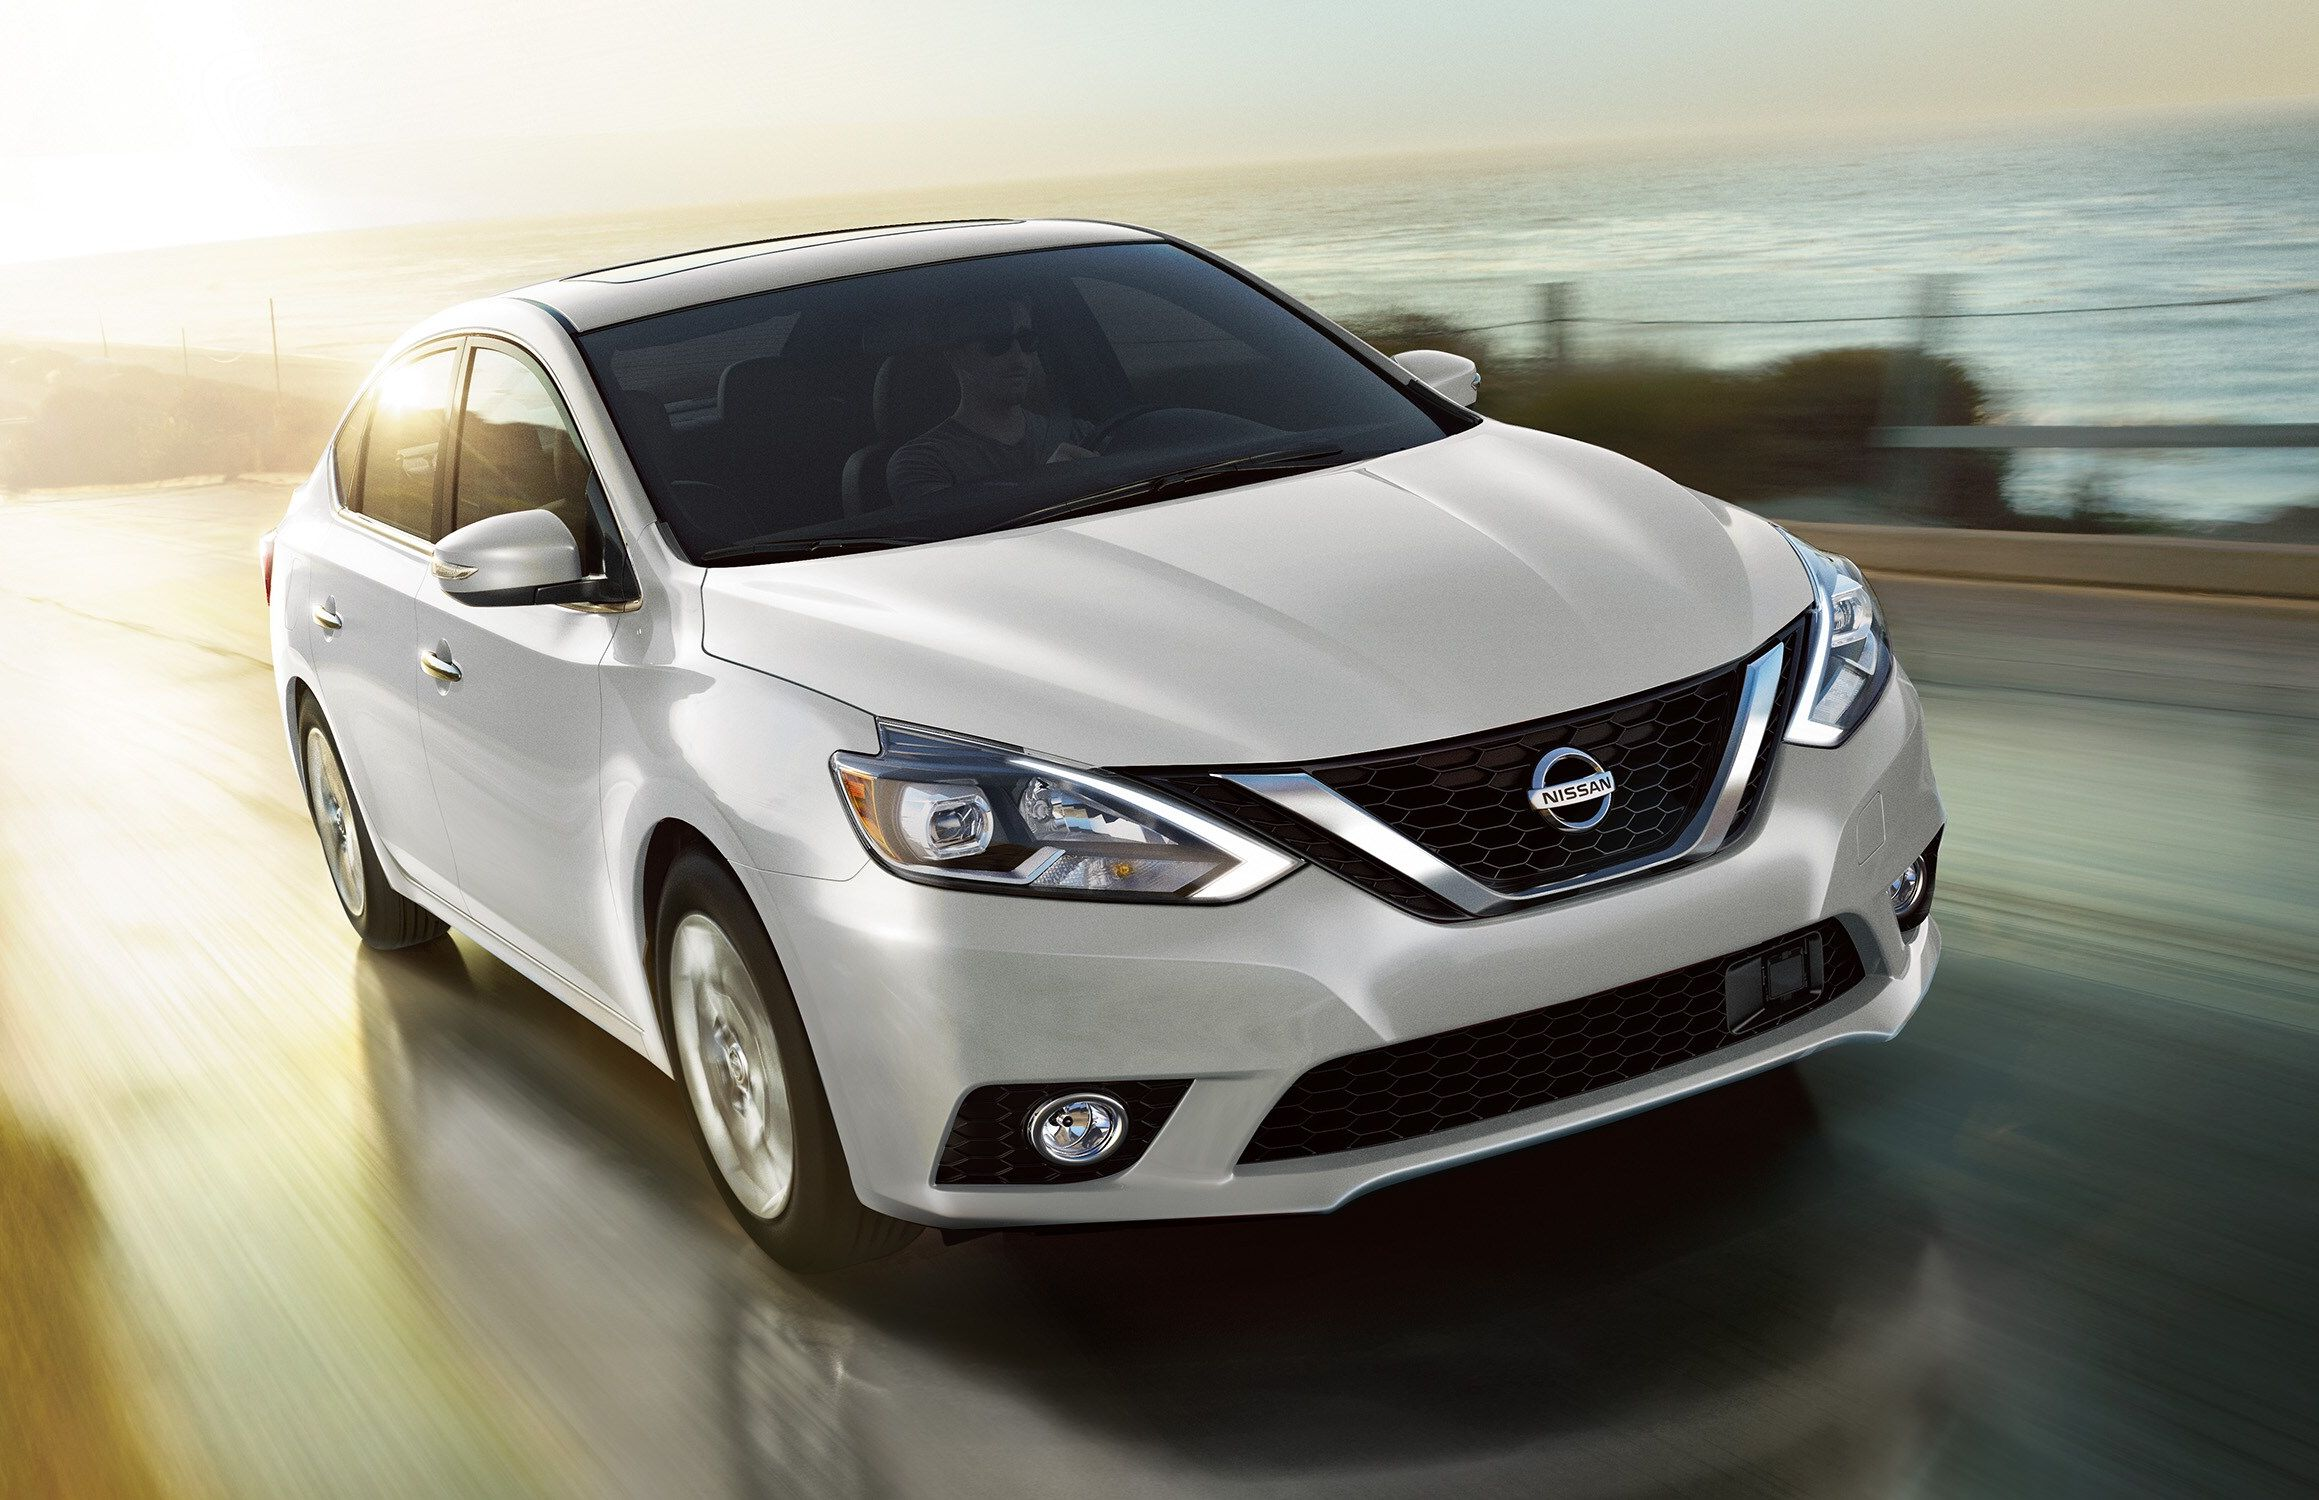 Drive a One-Owner Sentra!